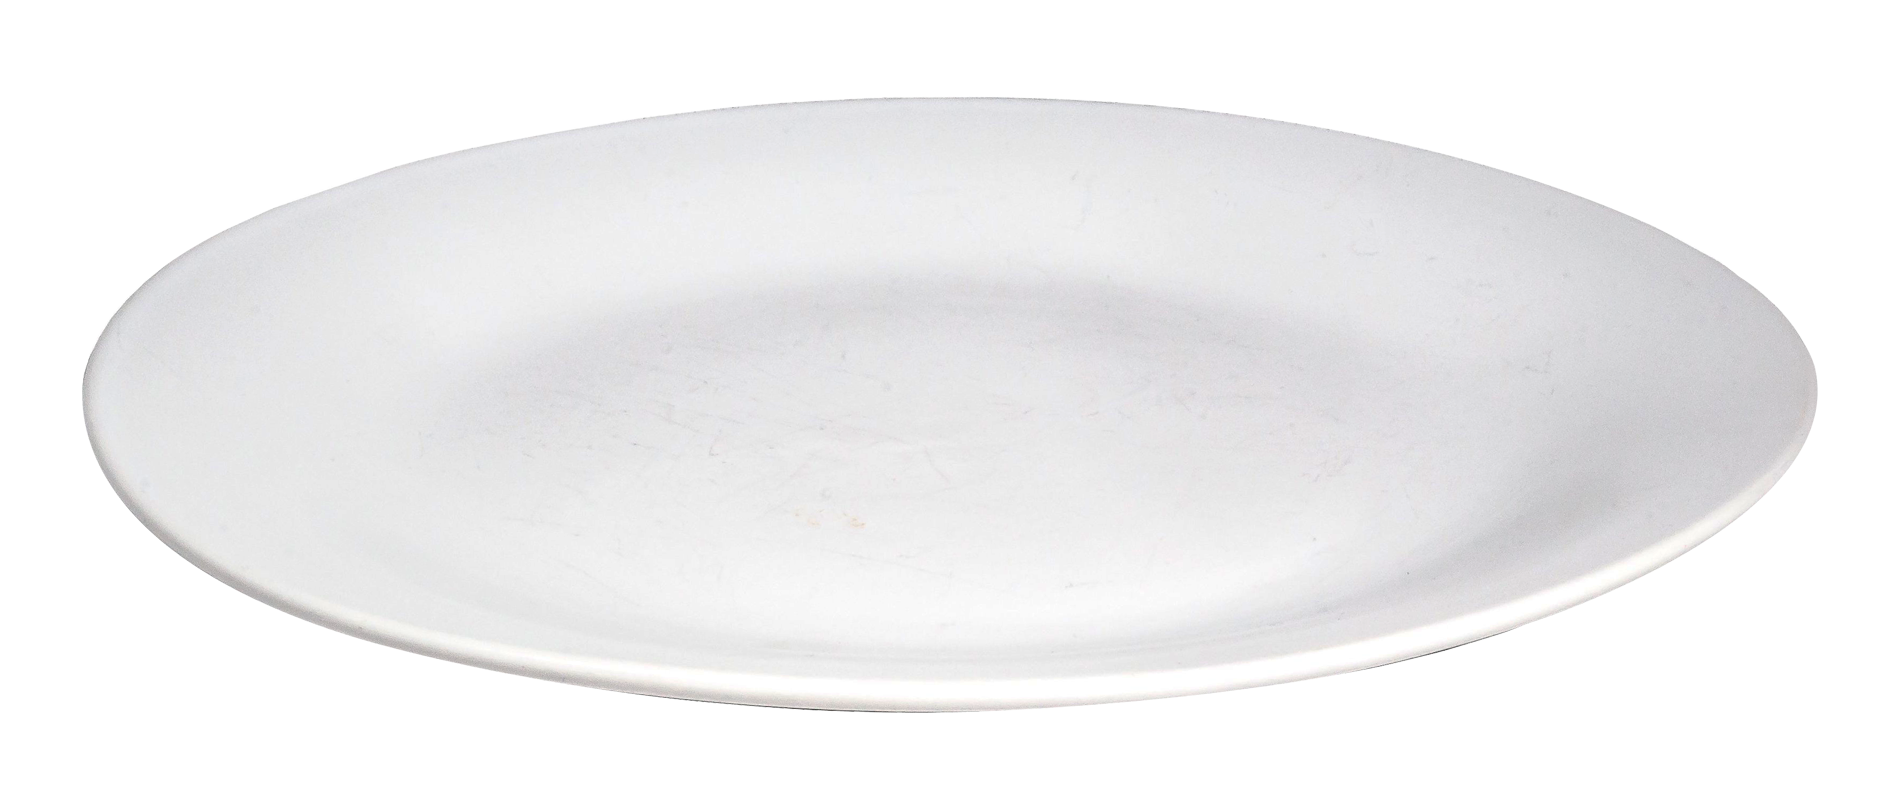 Plate PNG - 3183